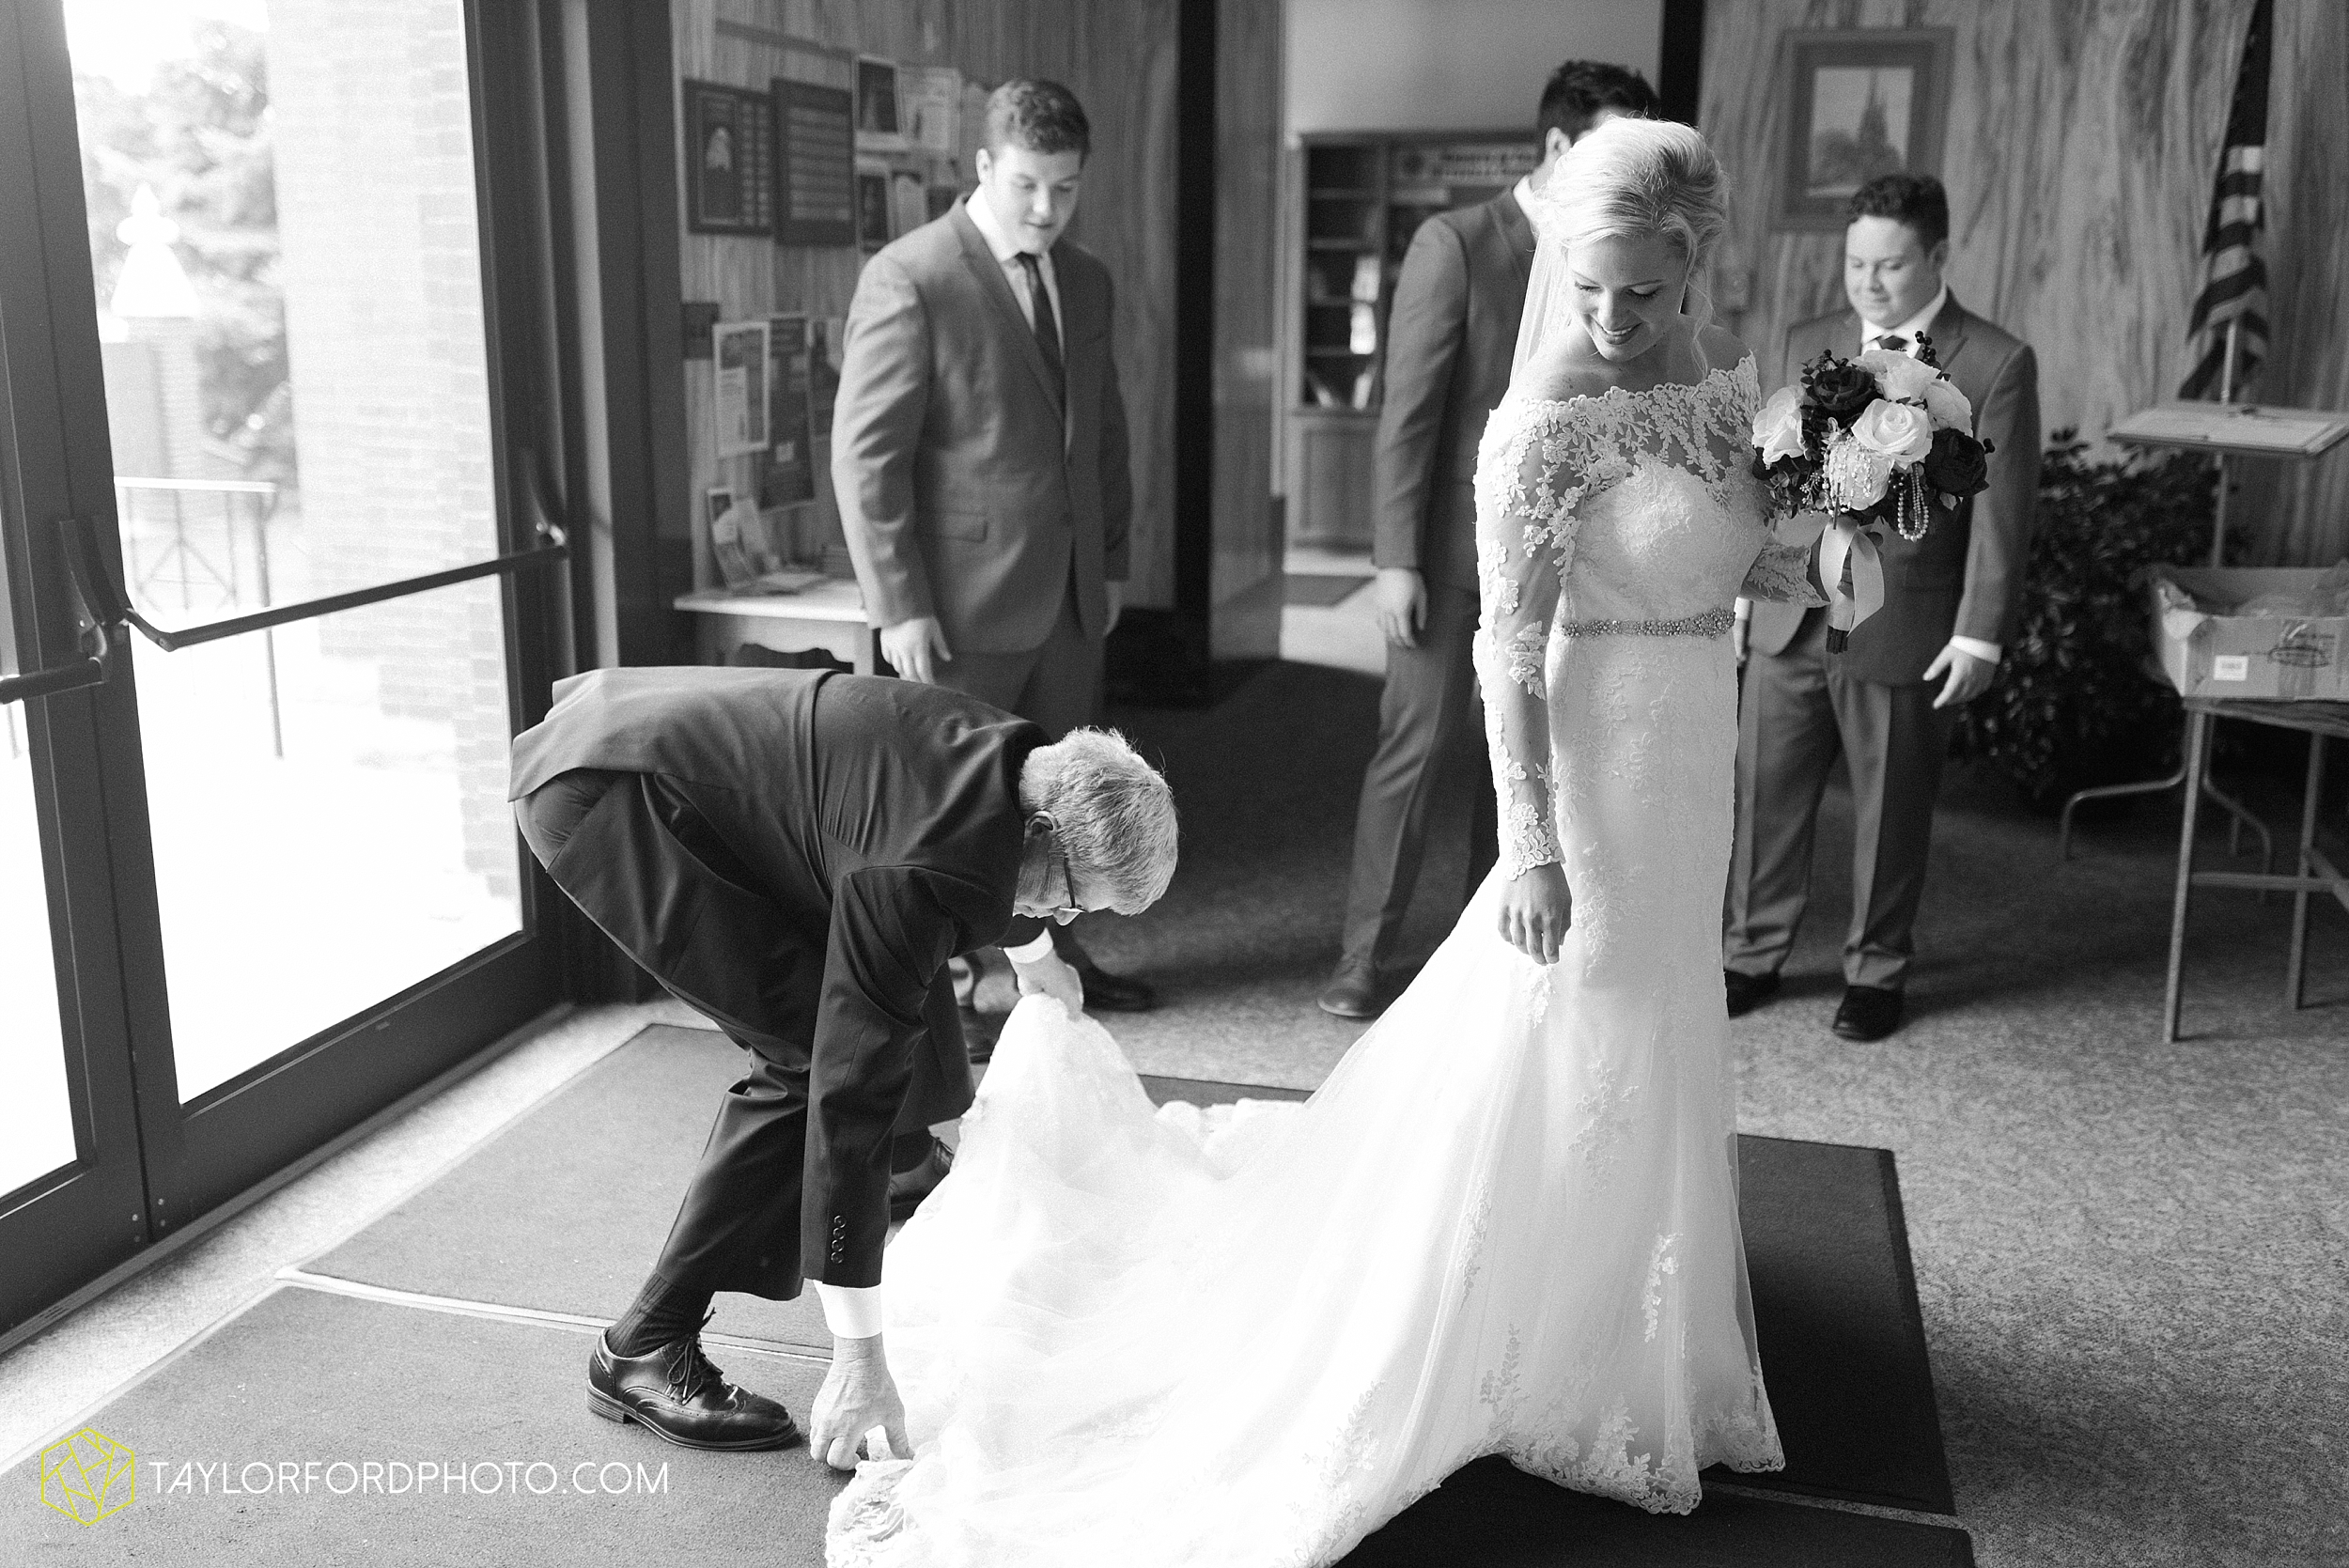 gayle-rayman-mike-steele-ottoville-ohio-wedding-immaculate-conception-parish-center-wedding-sycamore-lake-winery-wannamachers-photographer-taylor-ford-photography_0393.jpg